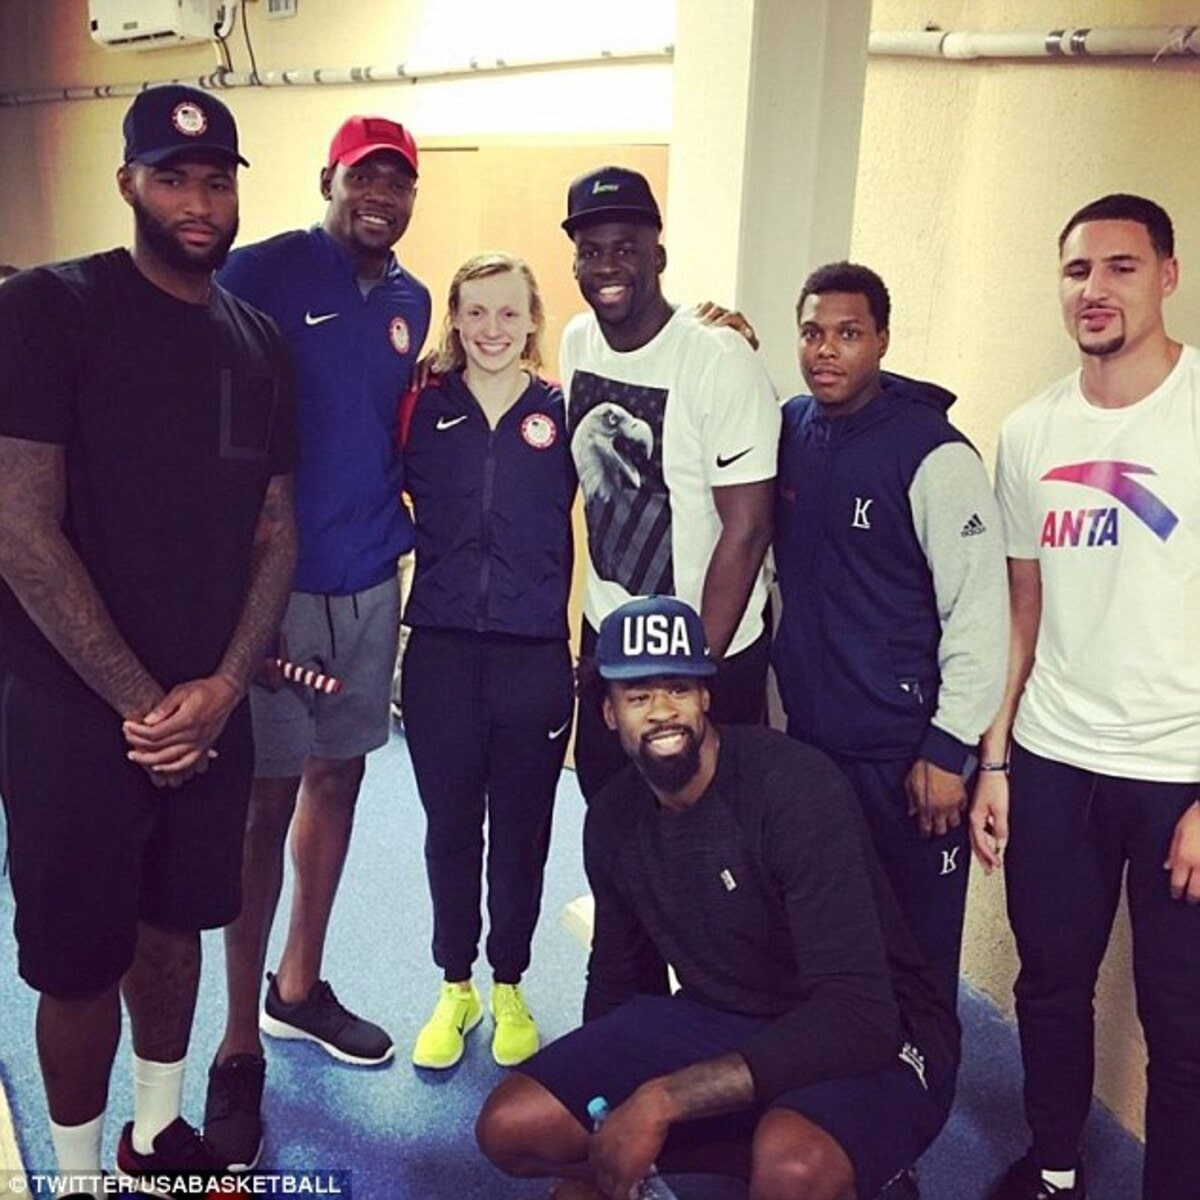 370FDAFD00000578-0-The_USA_Basketball_Twitter_account_shared_this_picture_of_the_ba-a-12_1470806215076